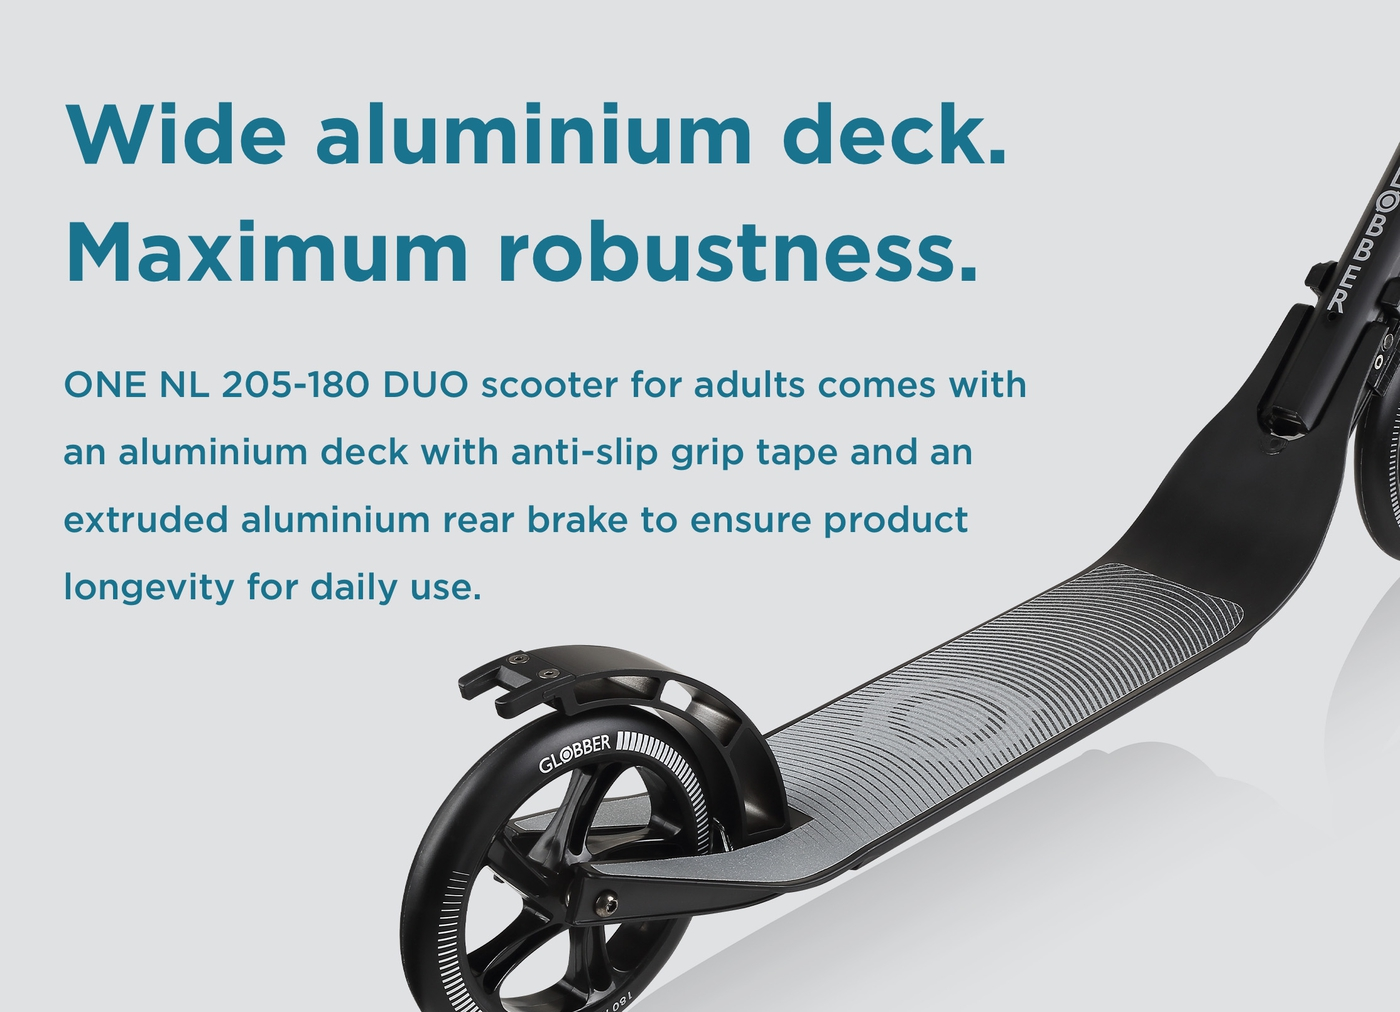 Wide aluminium deck. Maximum robustness.